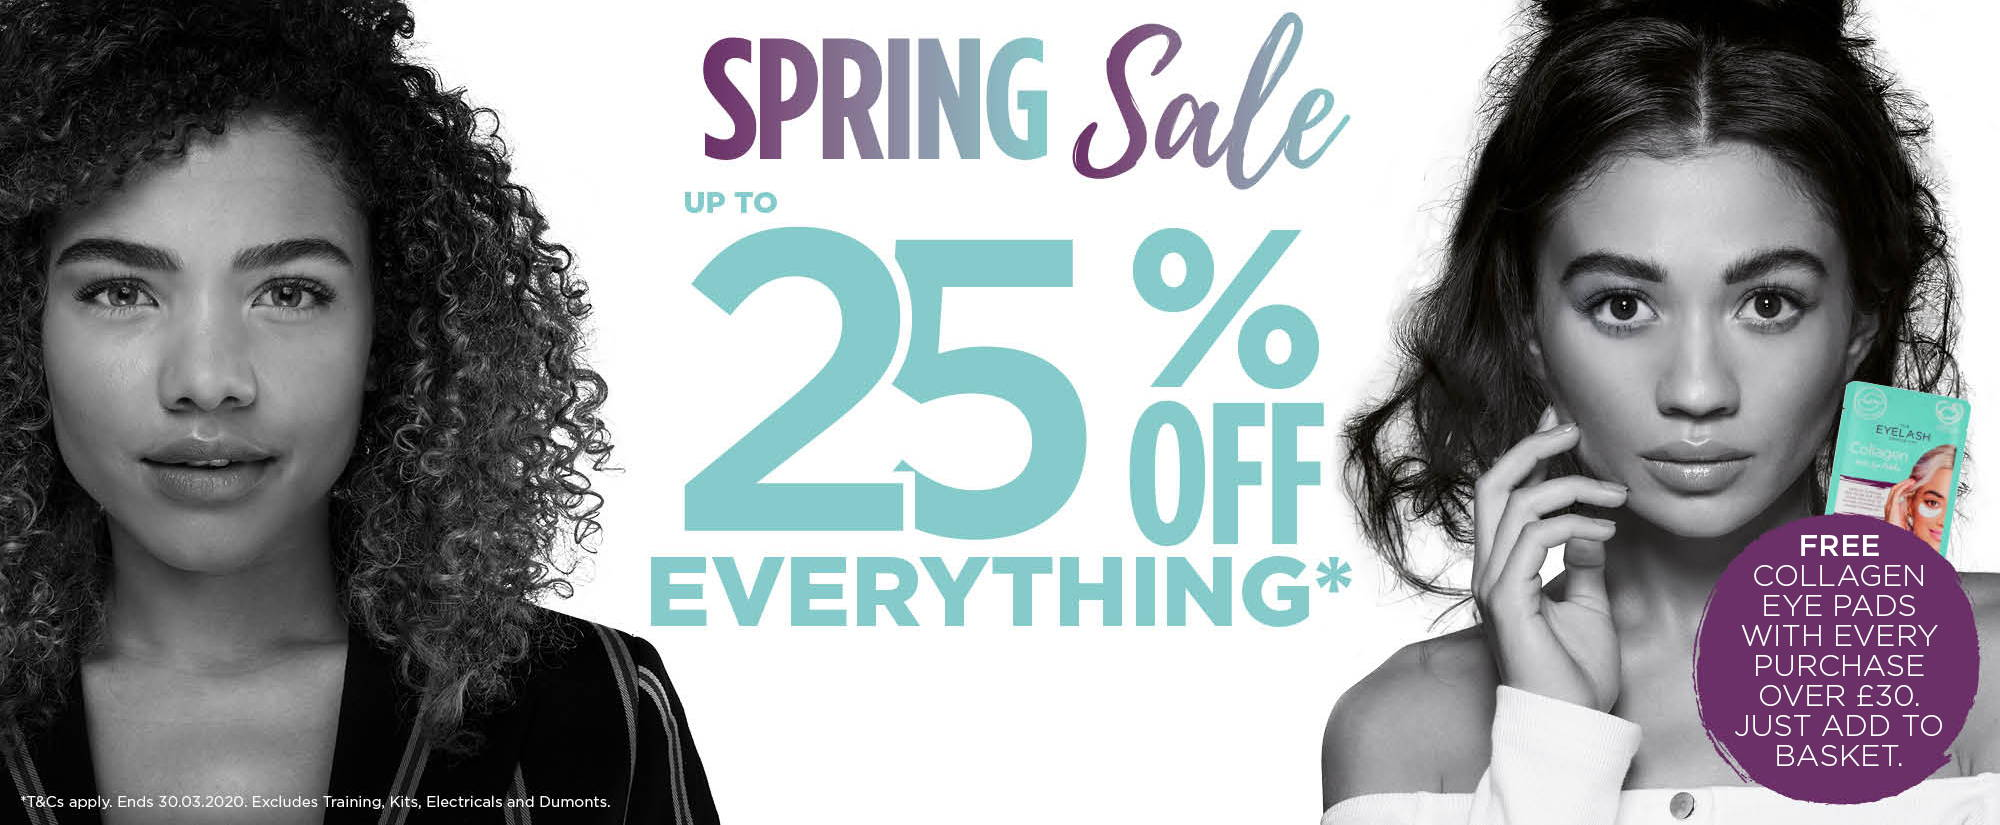 Spring Sale - Shop up to 25% off